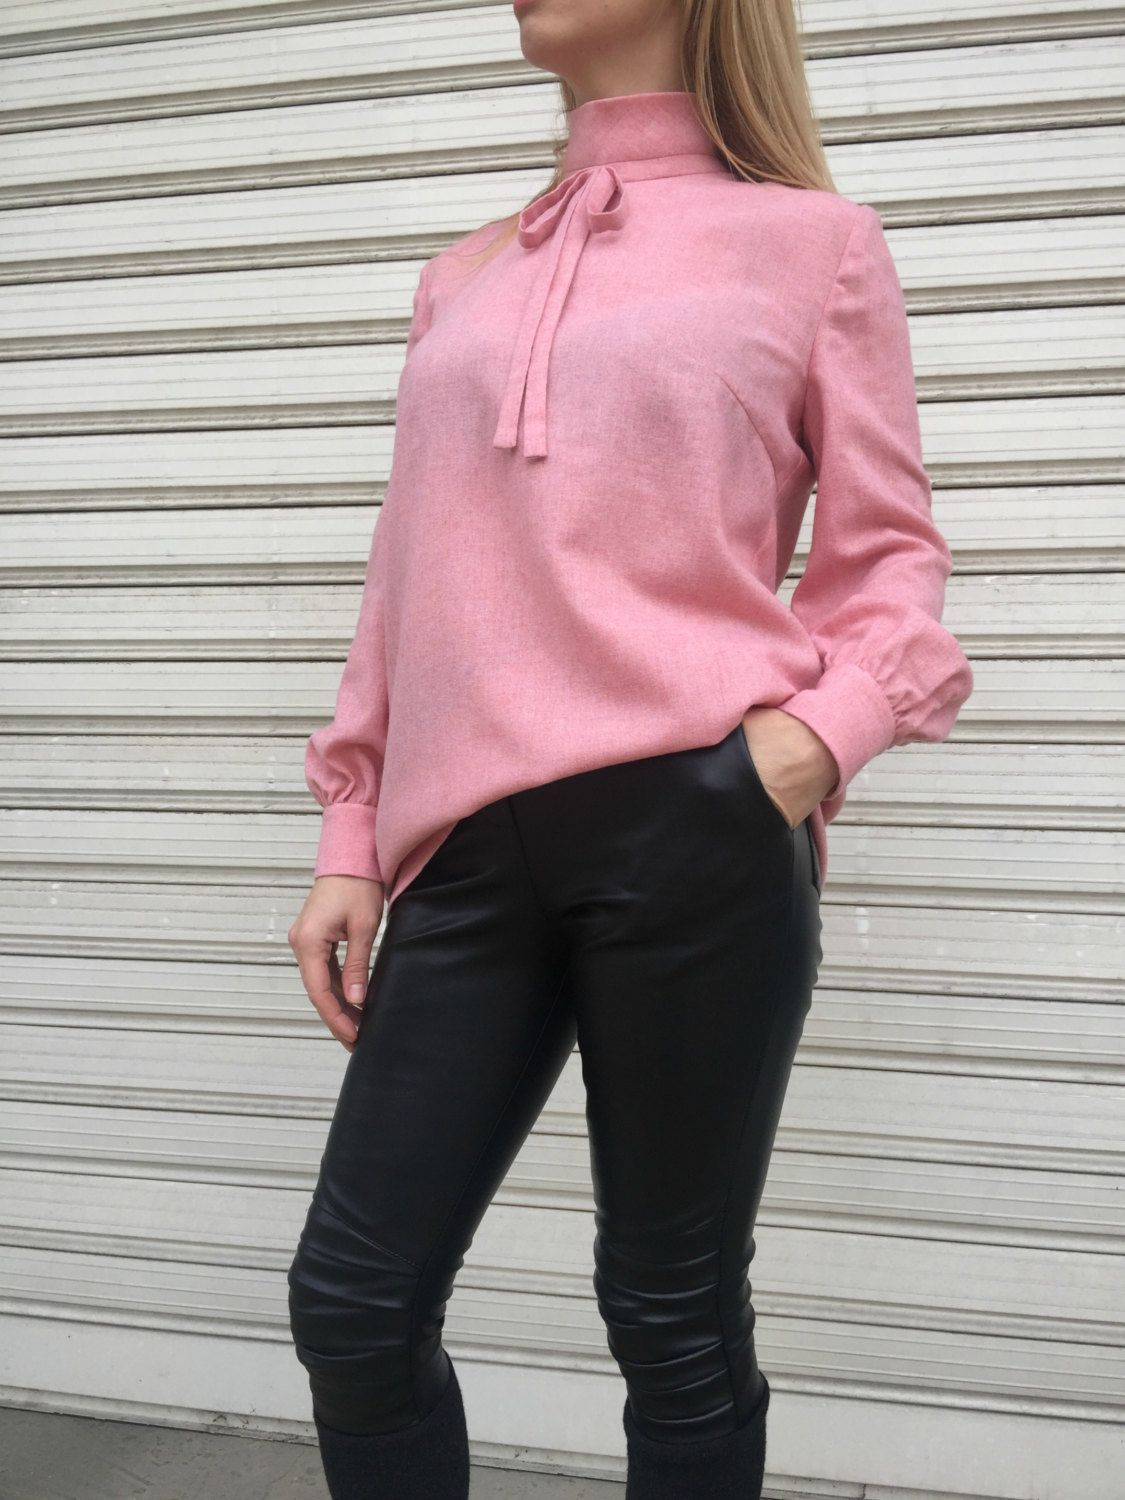 classy tops elegant women pink blouse loose shirt long sleeves top 7001